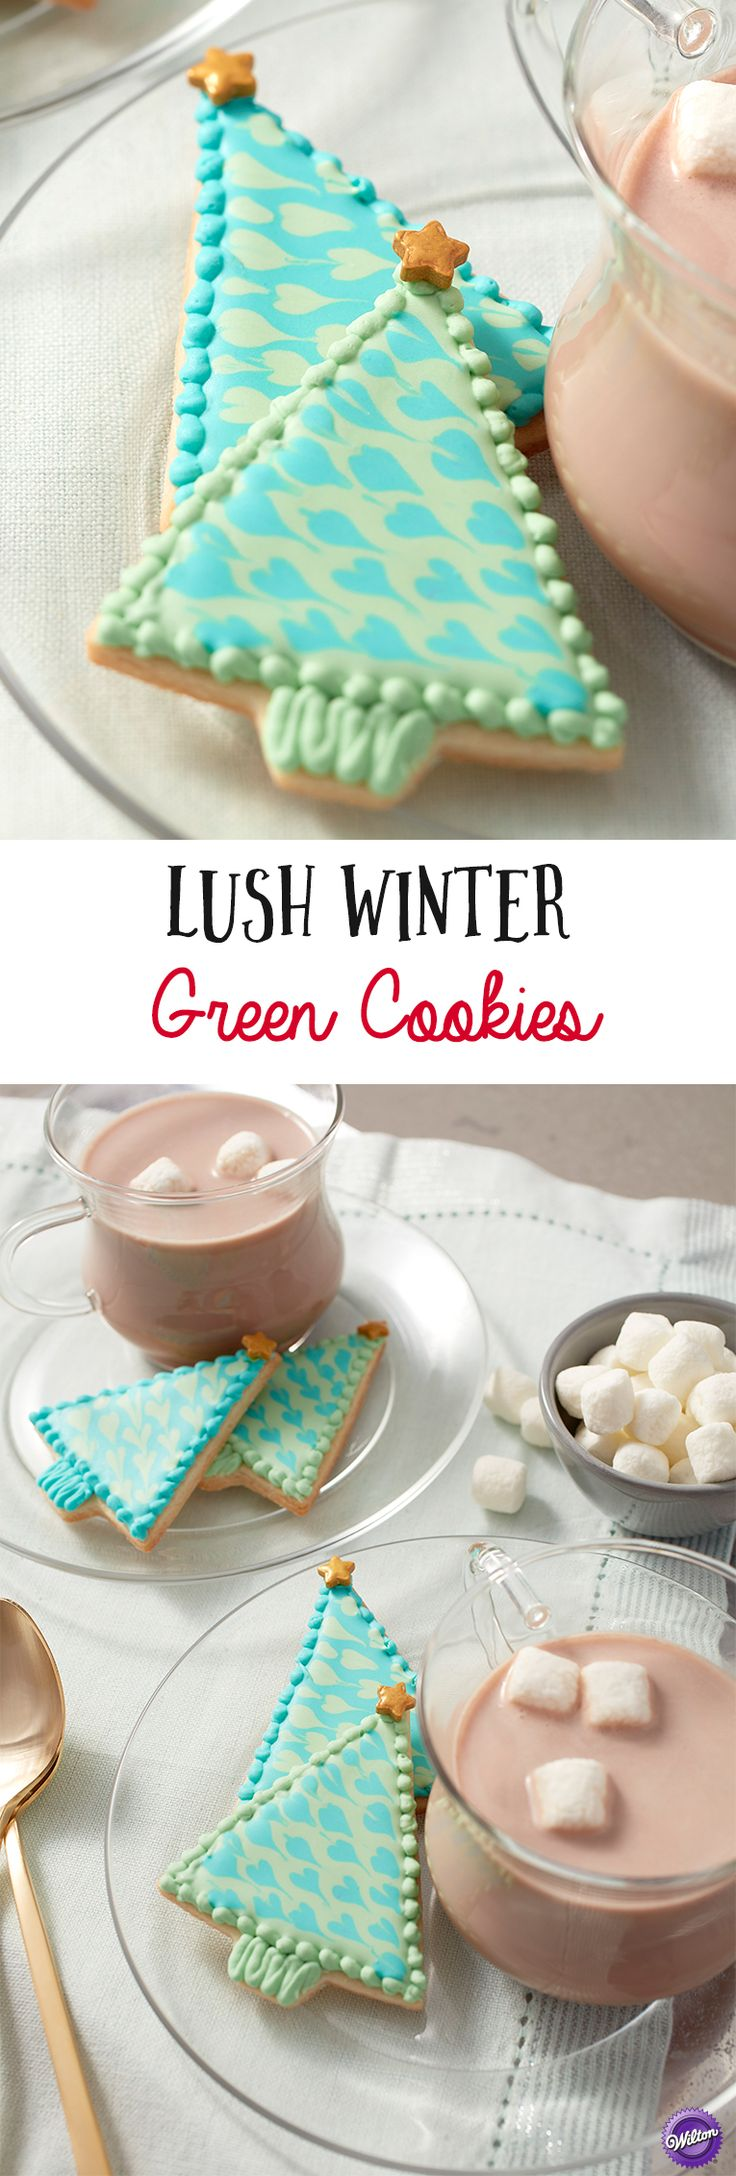 139 best Holiday Cookie Recipes images on Pinterest | Christmas ...